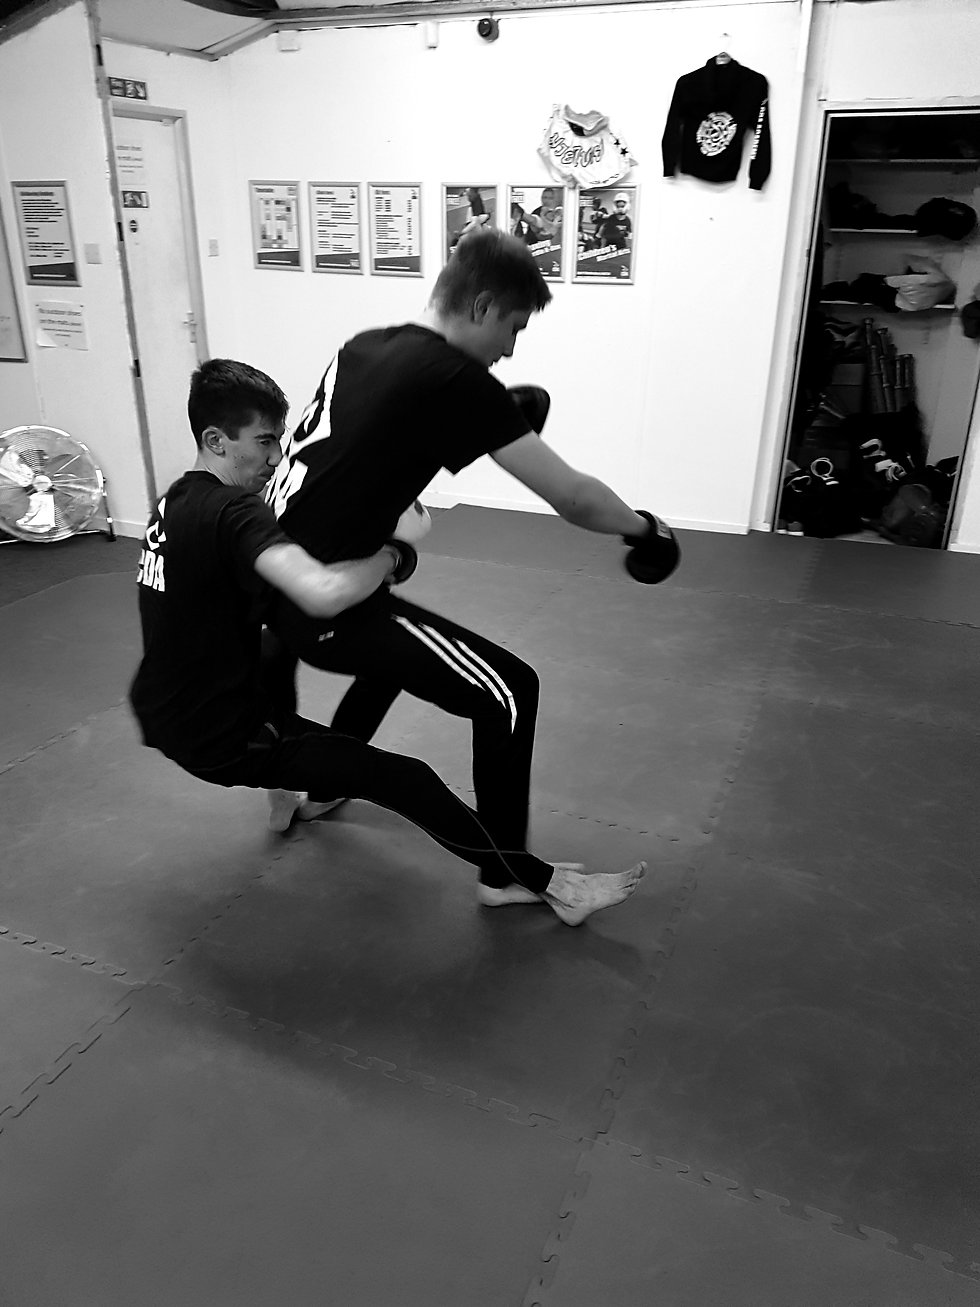 Two cda students grappling in a self defence lesson